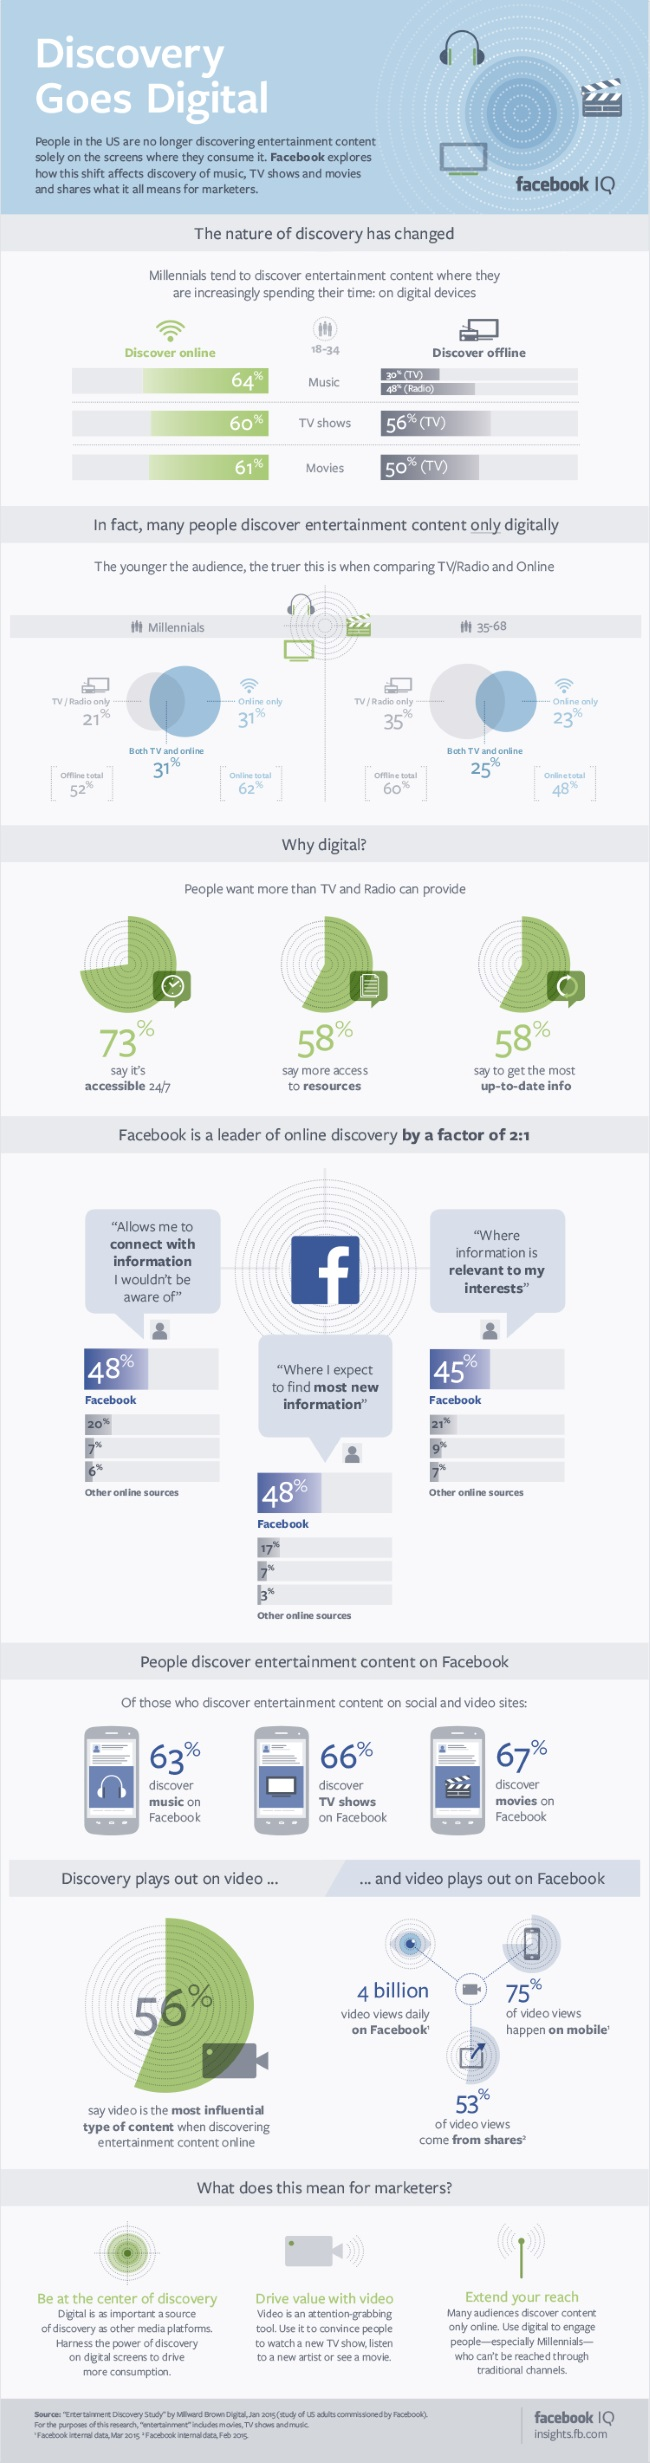 FacebookIQEntertainmentInfographic